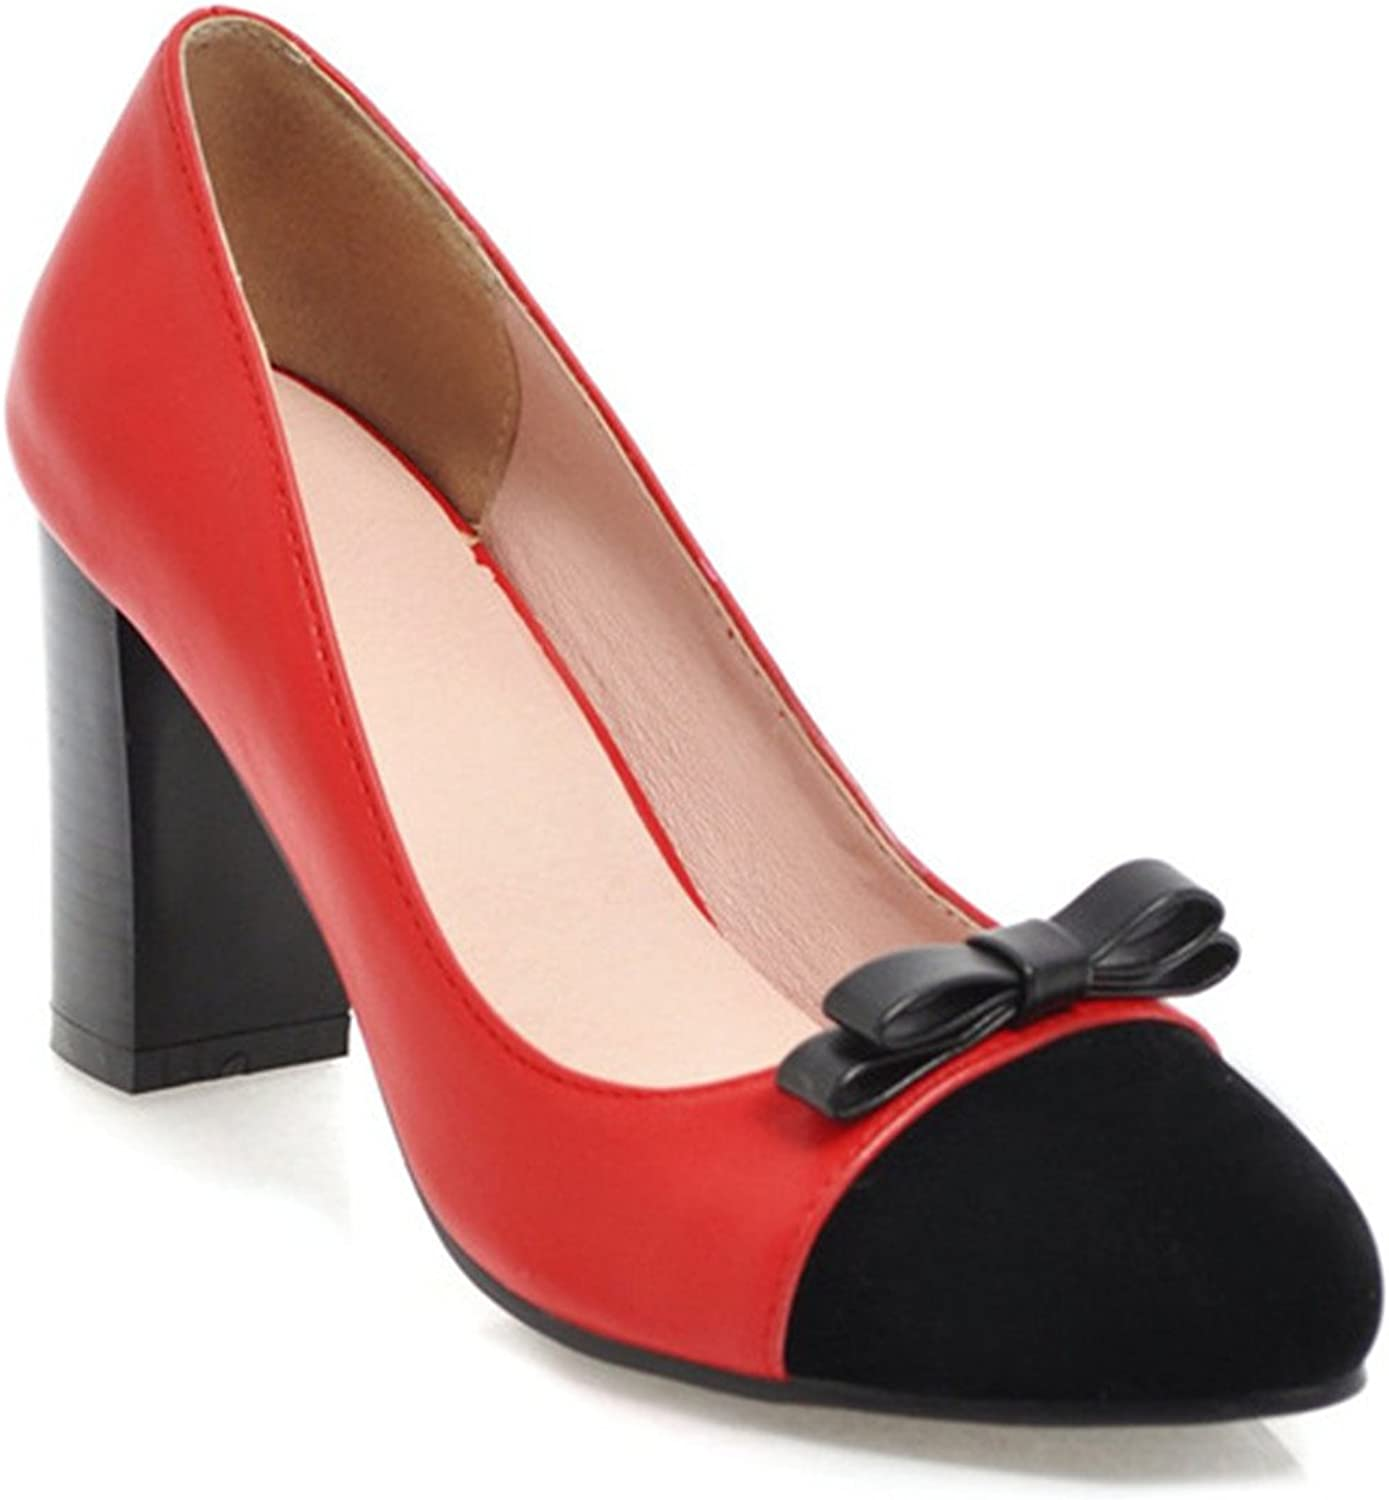 Women Pumps High Heels Party shoes Slip On Thick Heels Ladies Pumps Bow Shallowshoes